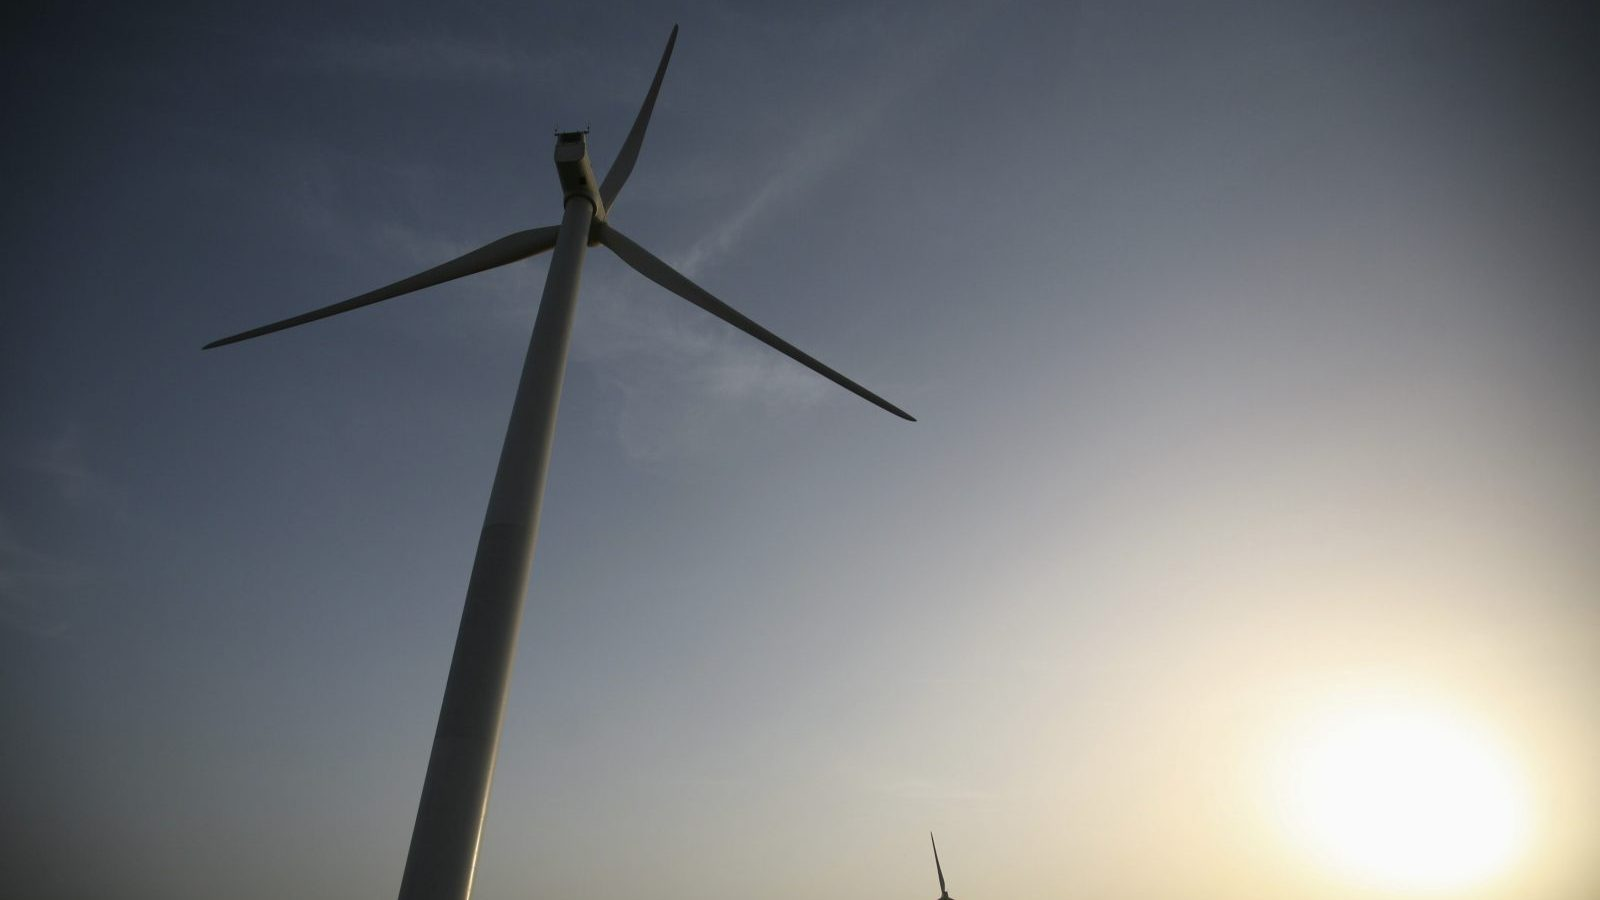 Power generating windmill turbines are pictured during the inauguration ceremony of the new 25 MW ReNew Power wind farm at Kalasar village in the western Indian state of Gujarat May 6, 2012. REUTERS/Amit Dave (INDIA - Tags: ENERGY BUSINESS) - GM1E85700TW02